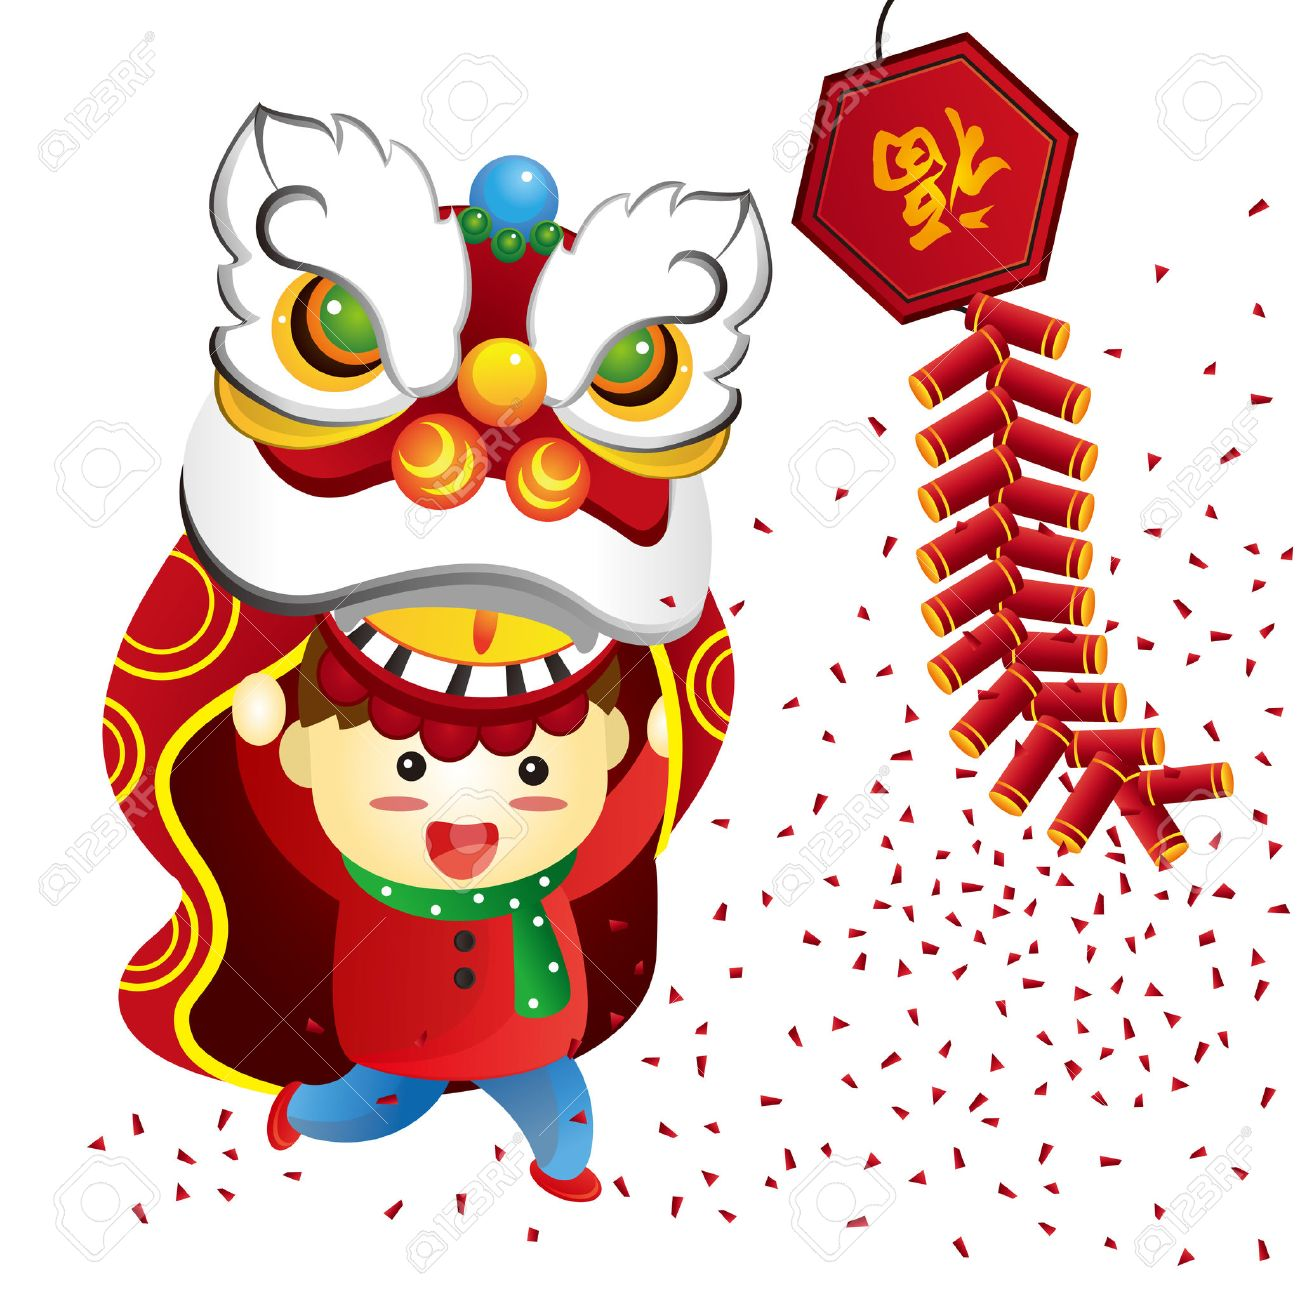 chinese new year royalty free cliparts vectors and stock rh 123rf com free chinese new year clipart images free chinese new year clip art greeting 2017